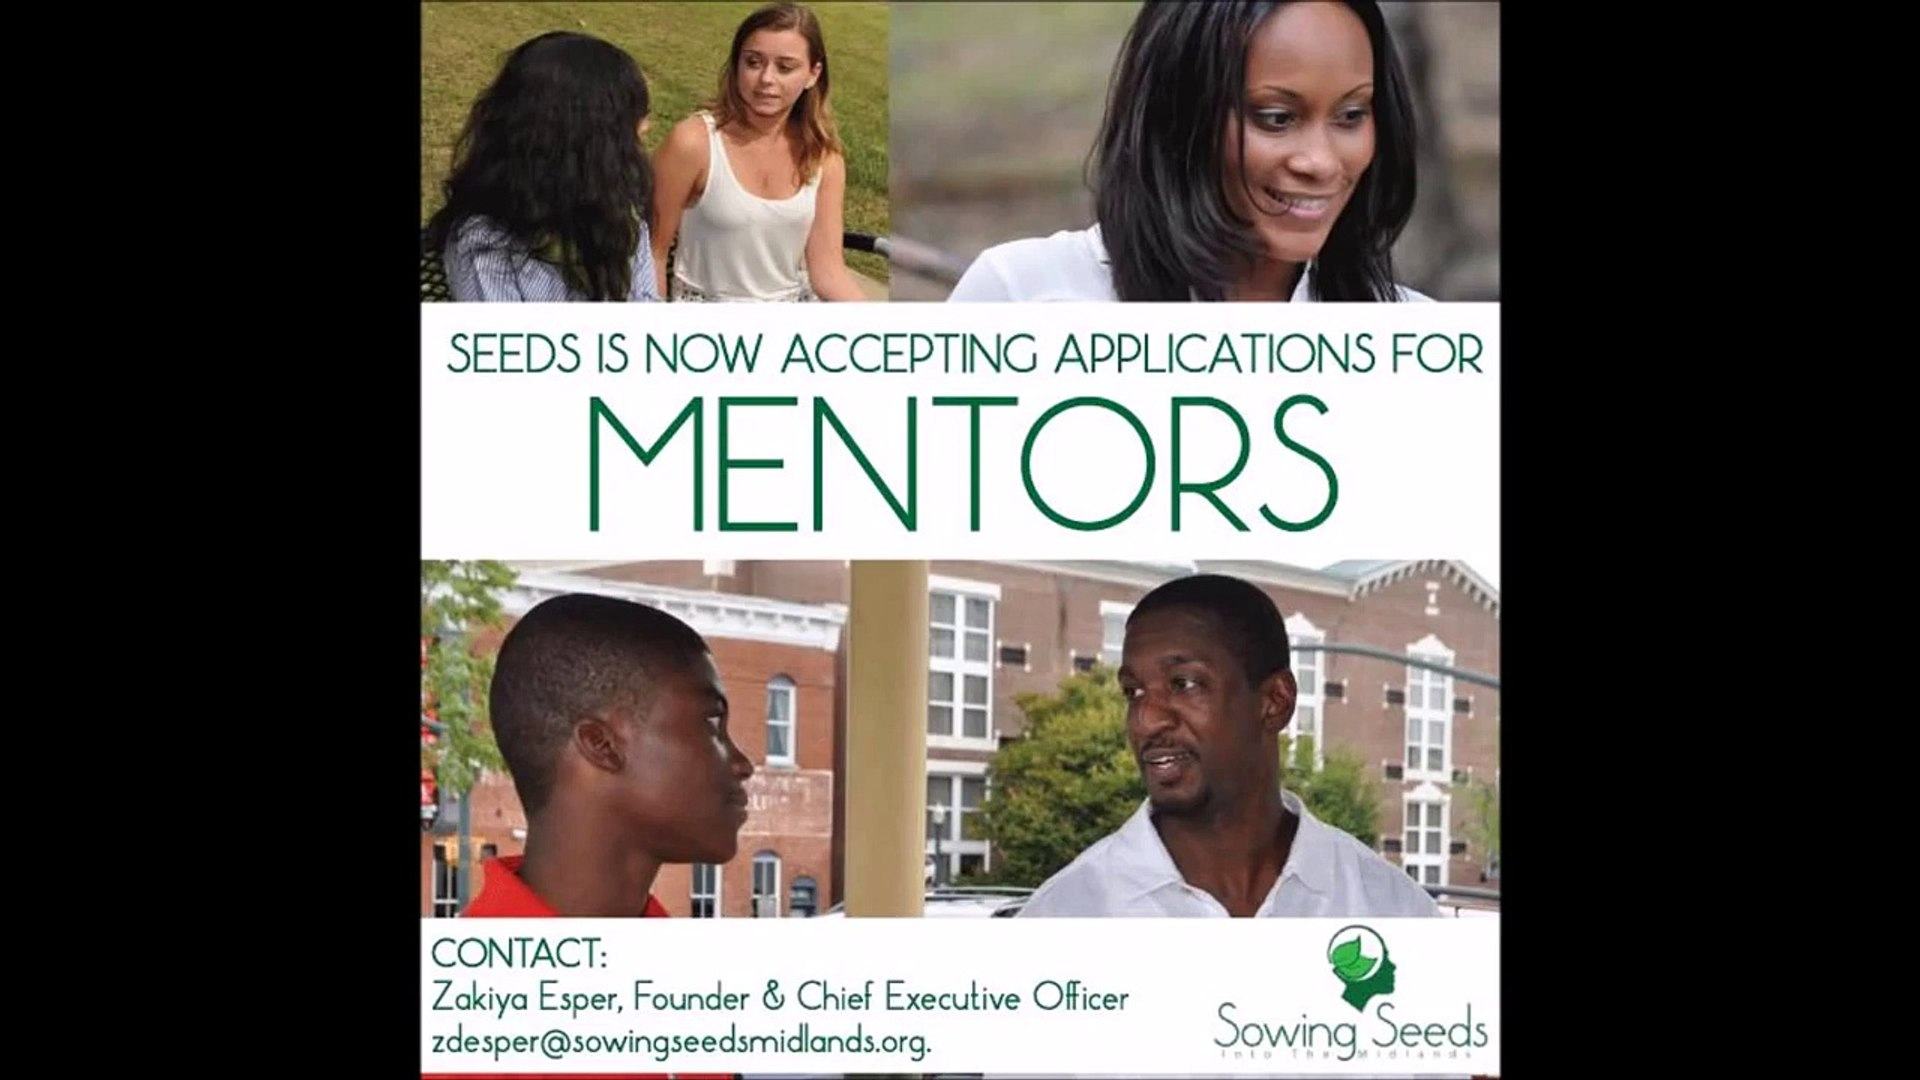 Sowing Seeds: Former SC Probation Officer launches Non-profit to Provide Mentors for Midlands Youth